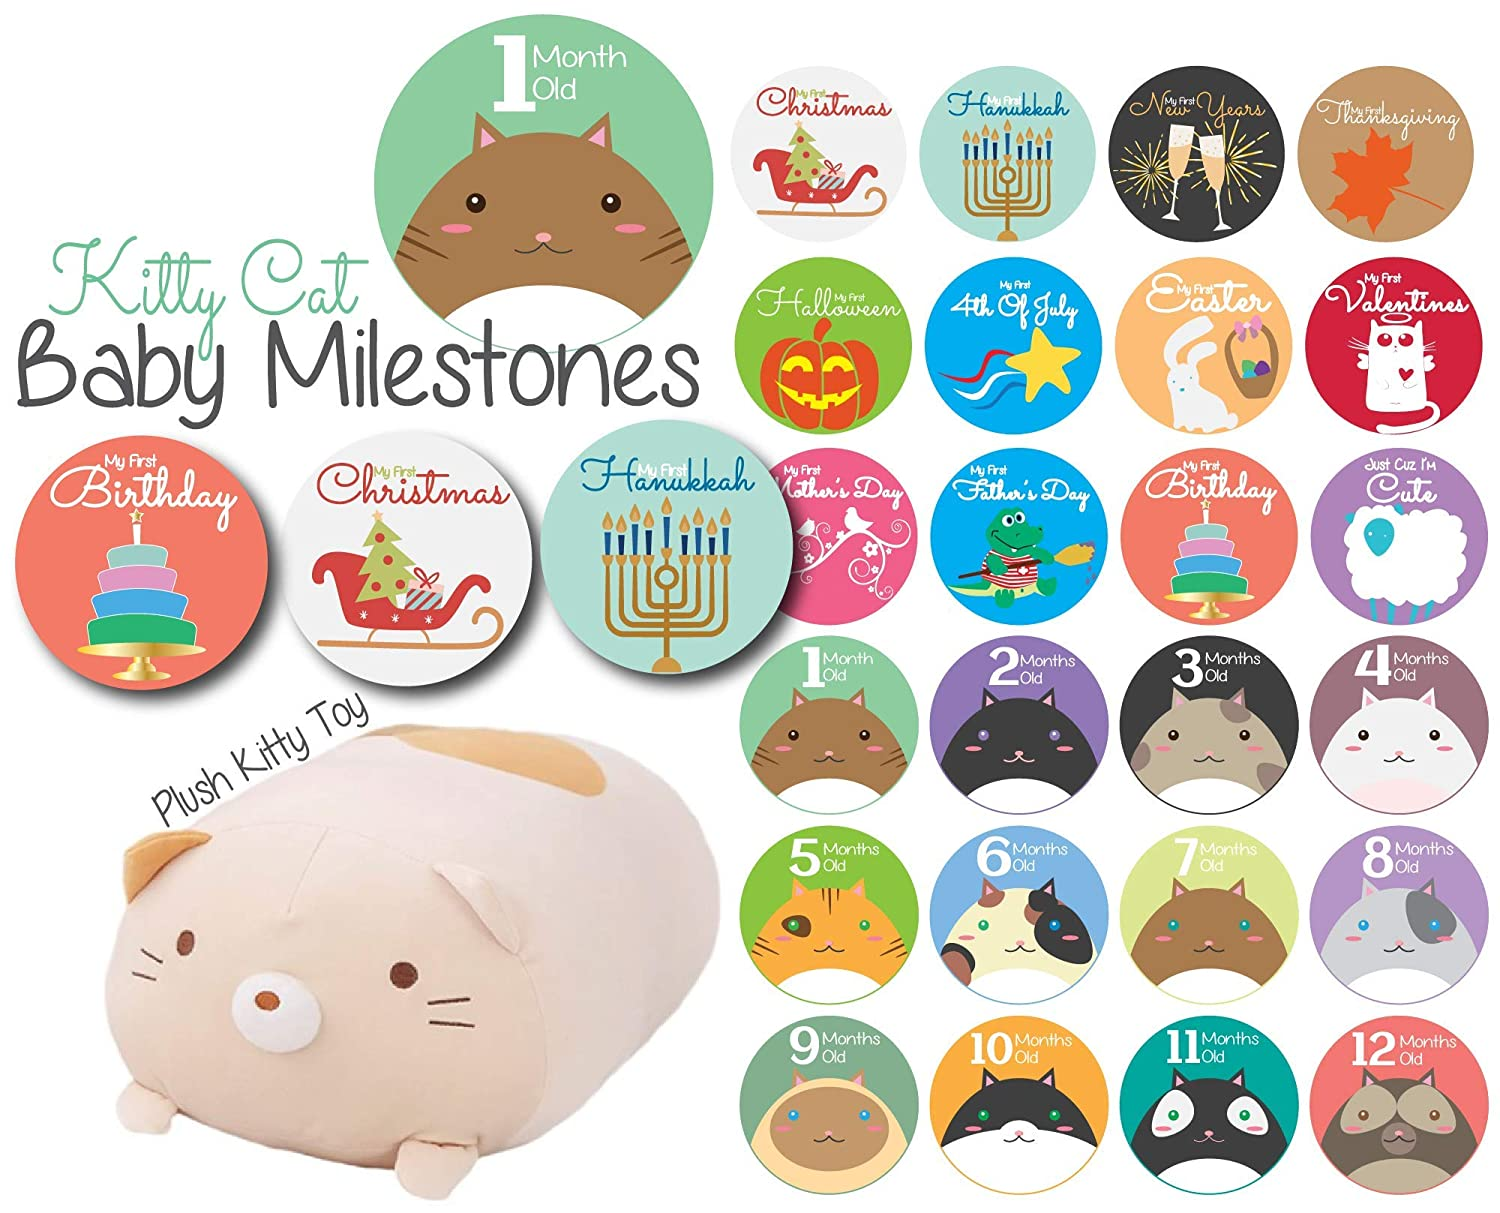 Baby Monthly Stickers | Mermaid Baby Stickers | Babys First Year 12 Monthly Milestone Stickers Plus 12 Holiday and Special Occasion Stickers L & P Designs